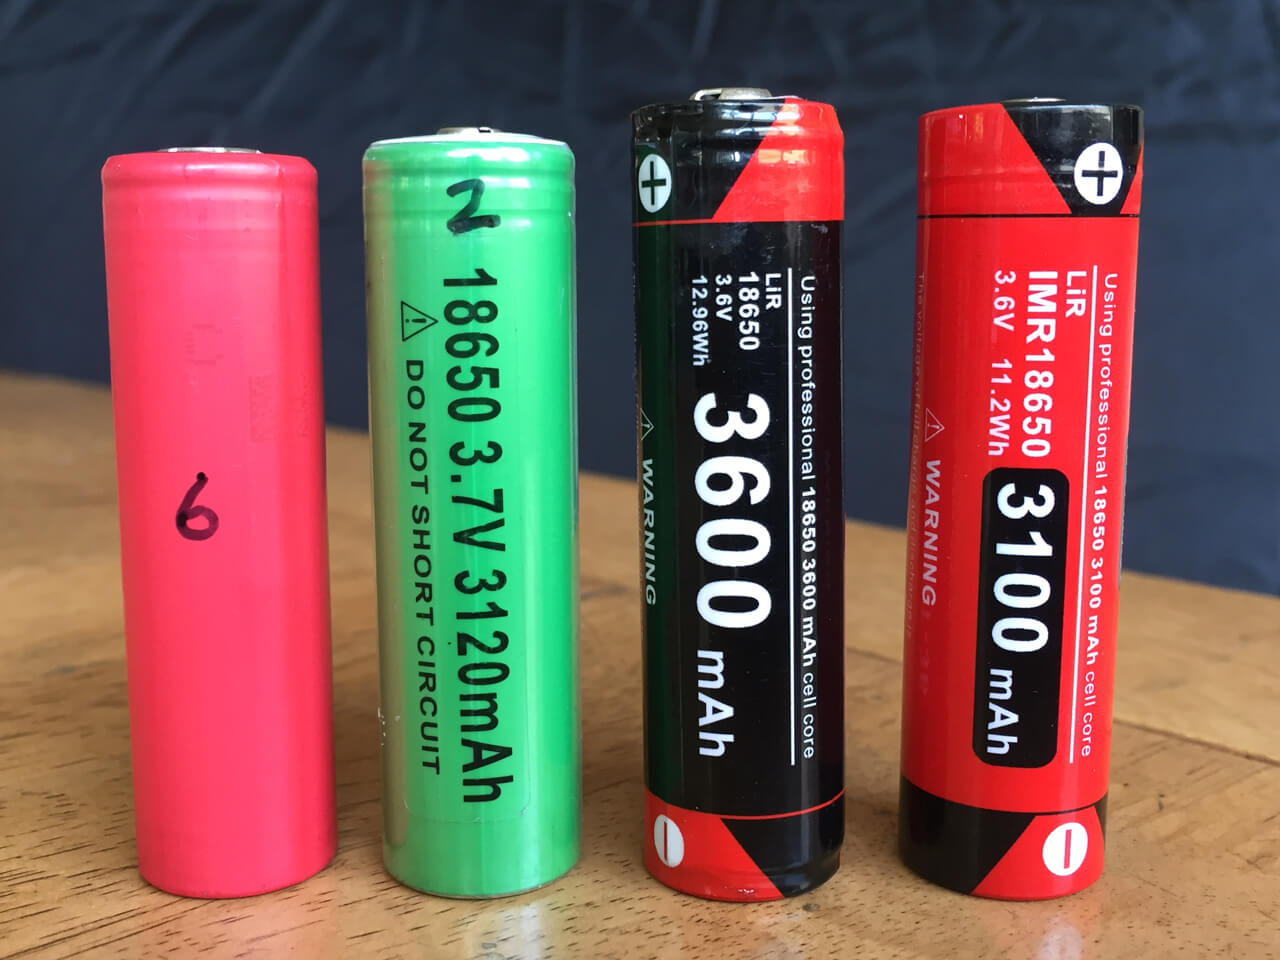 Unprotected vs Protected 18650 batteries